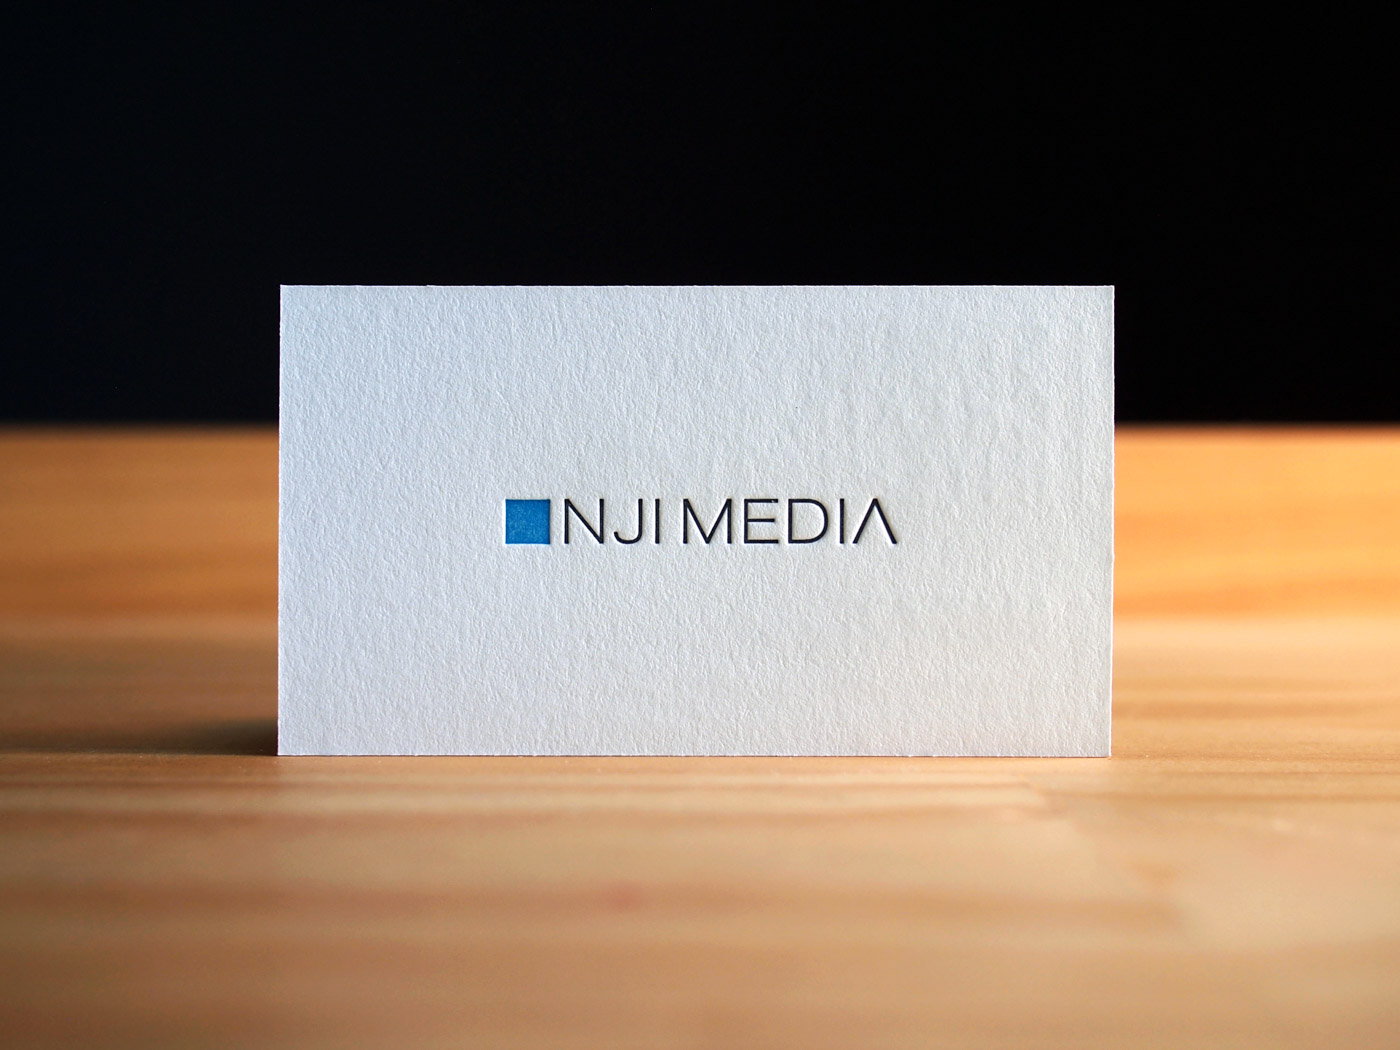 NJI Media | Printed by Parklife Press